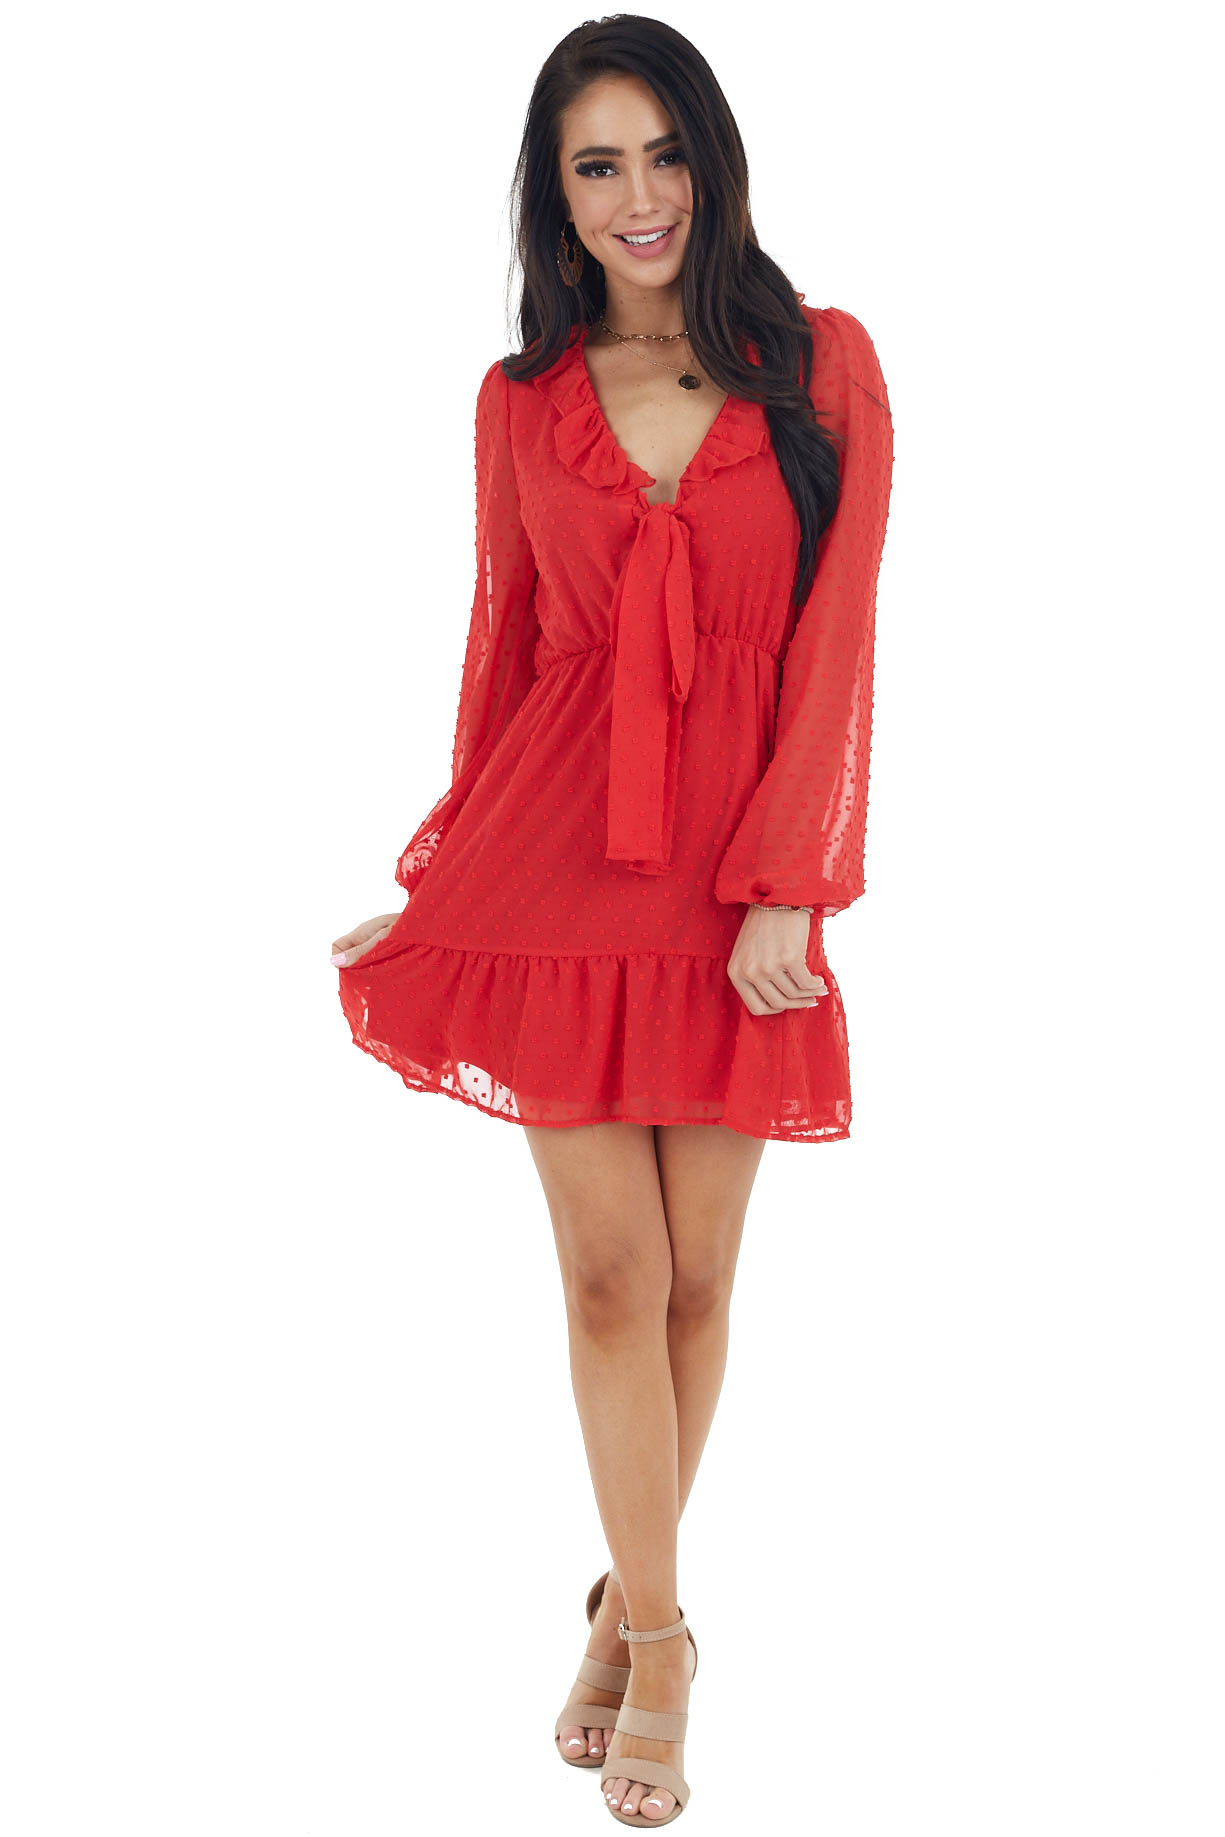 Ruby Red Swiss Dot Woven Dress with Front Tie Closure